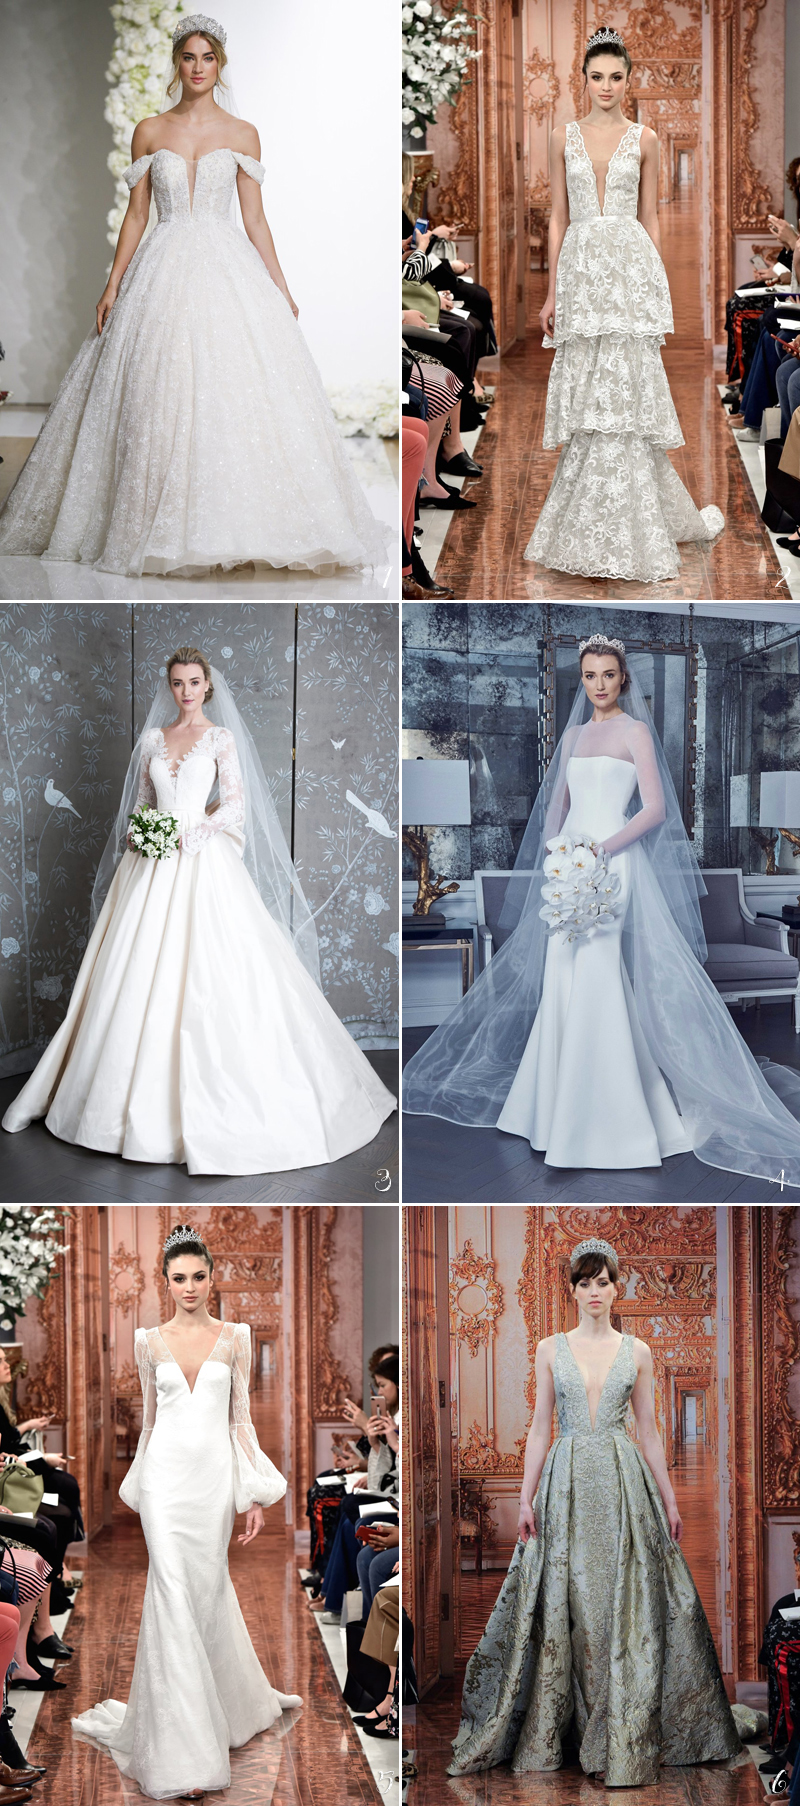 2019weddingdresstrend02-RoyalWeddingFever